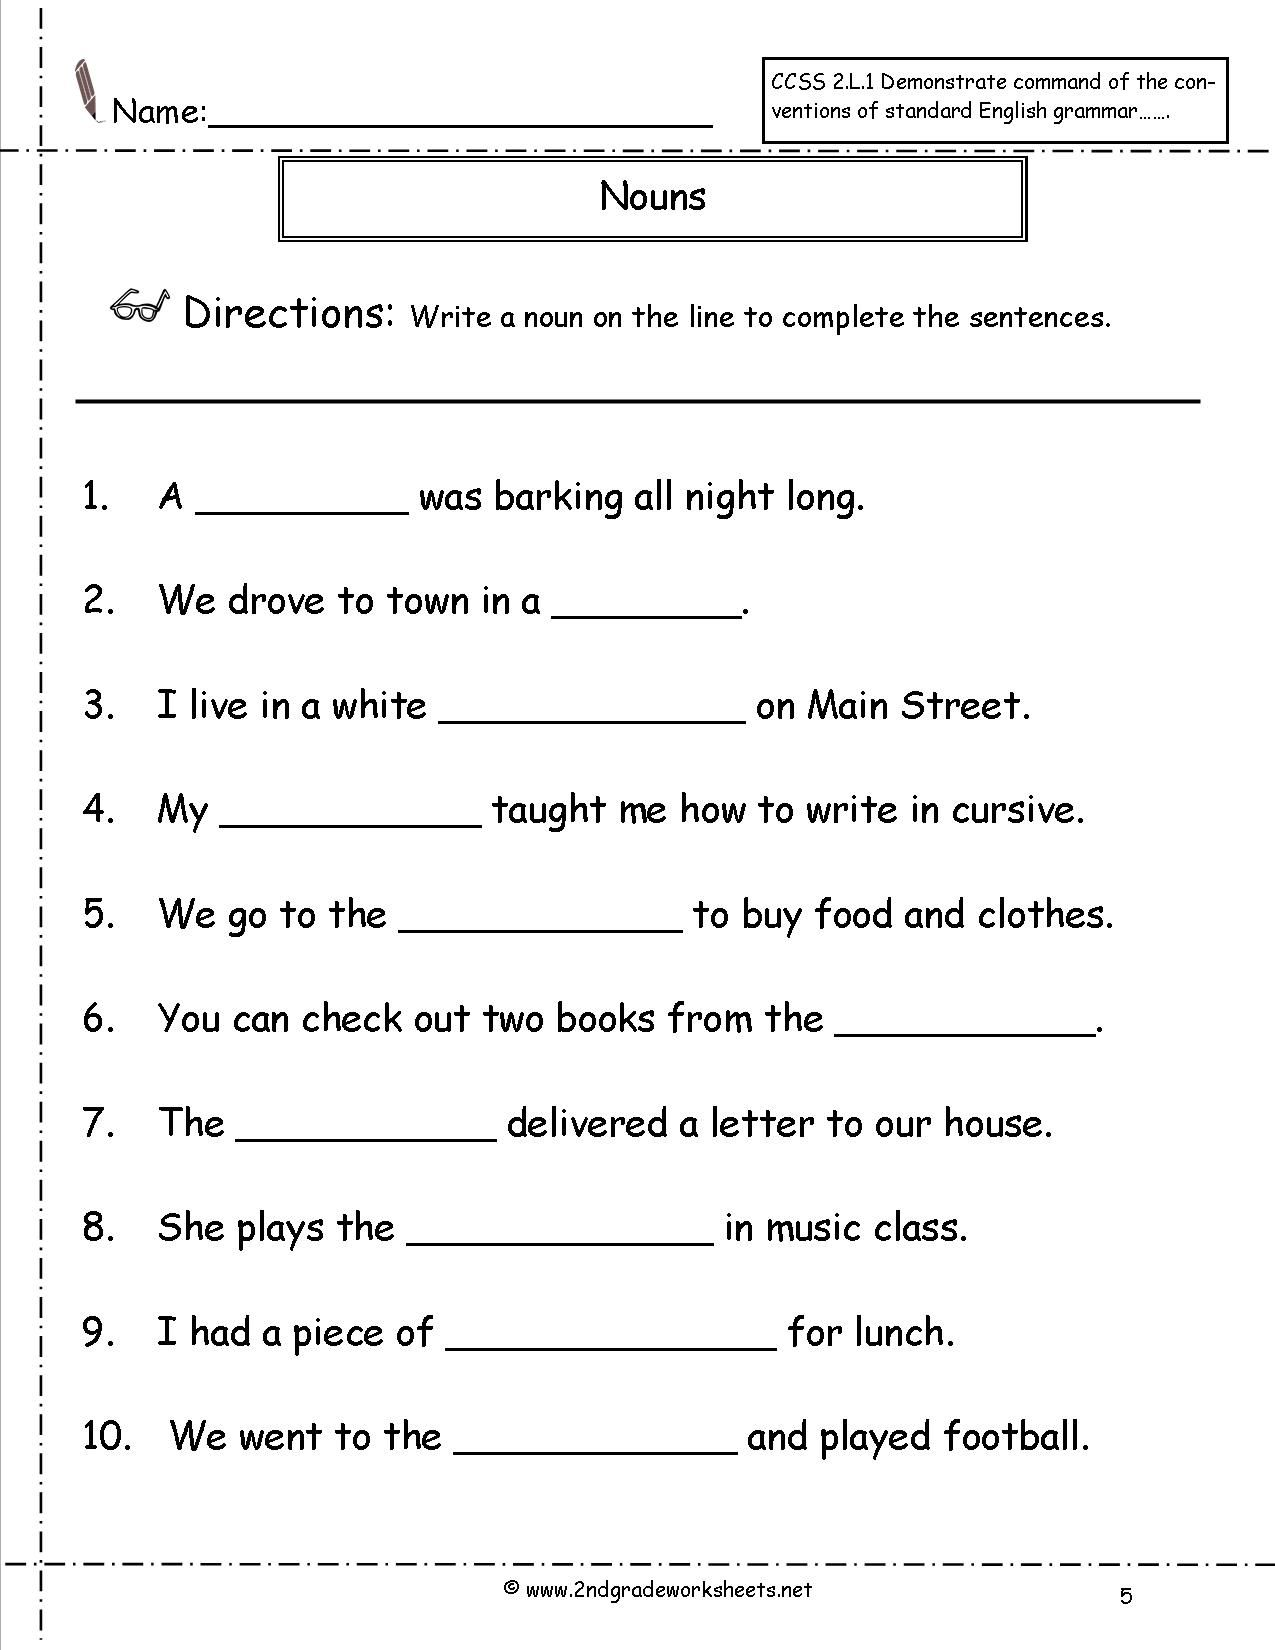 23 Best 1st Grade Worksheets Images On Best Worksheets